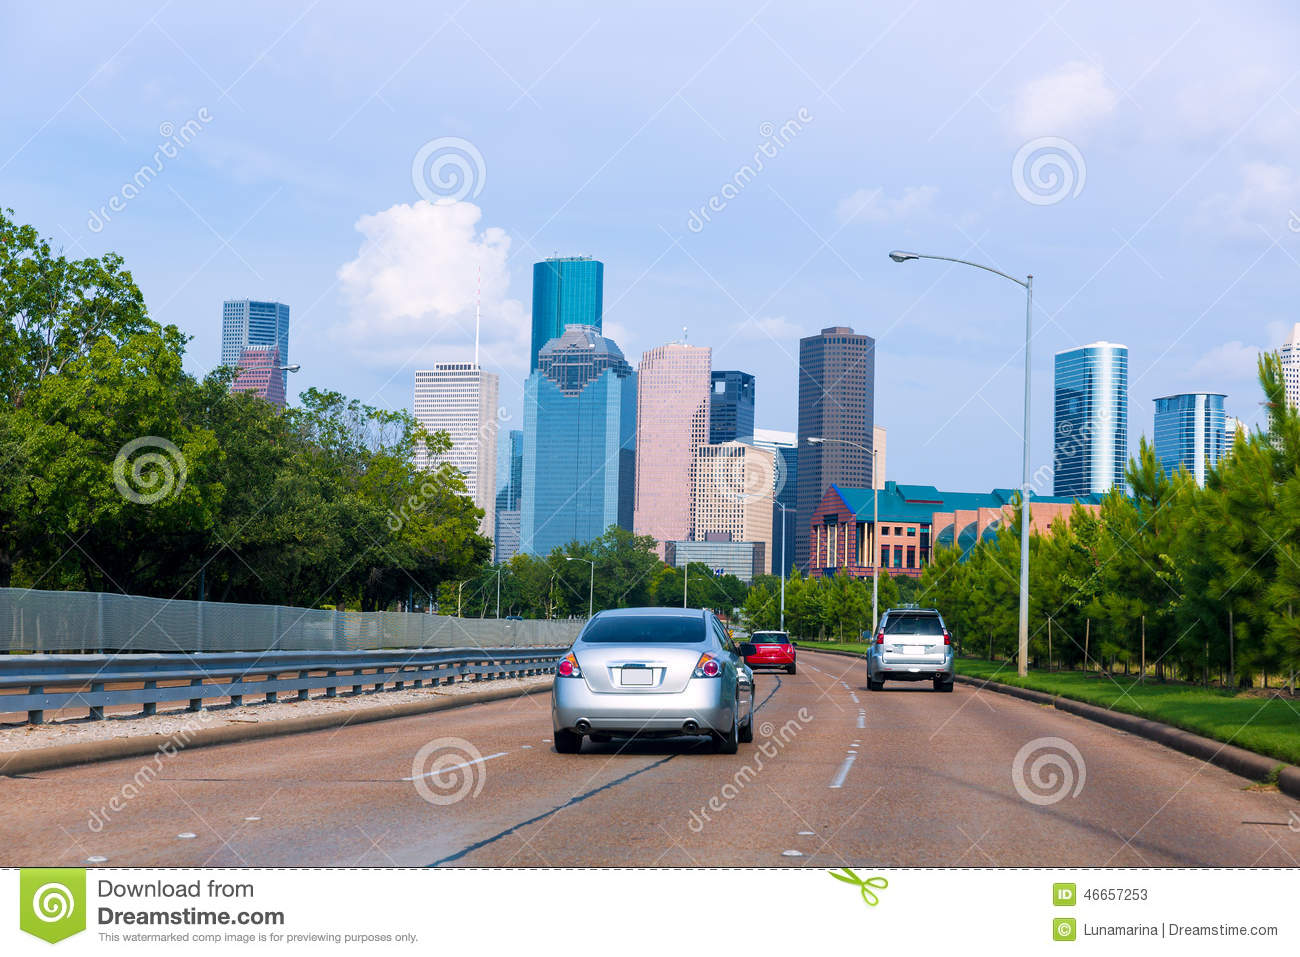 Buffalo (TX) United States  city photos gallery : Houston Skyline From Buffalo Bayou Pkwy Texas US Stock Photo Image ...